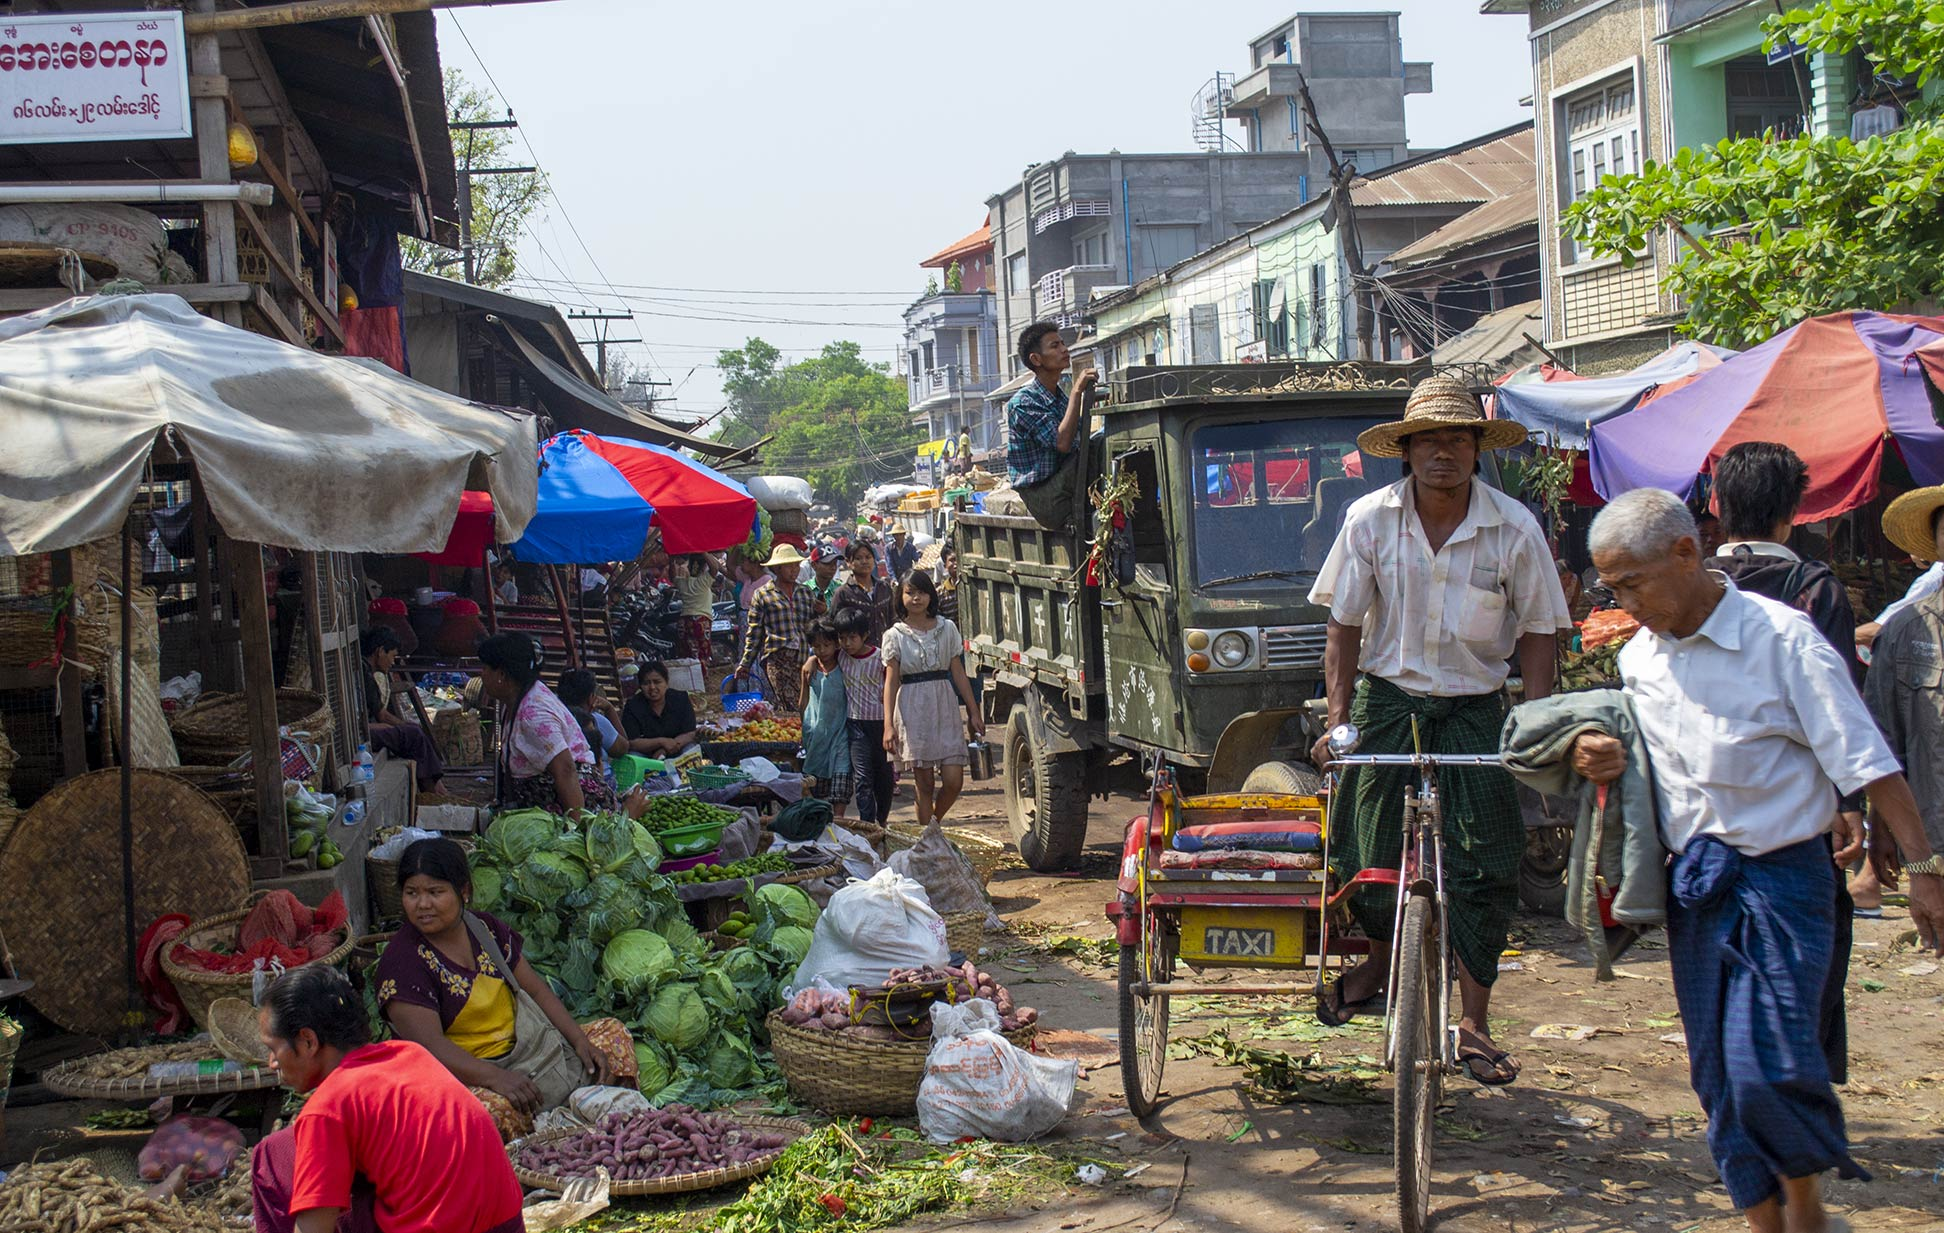 Market scene in Mandalay